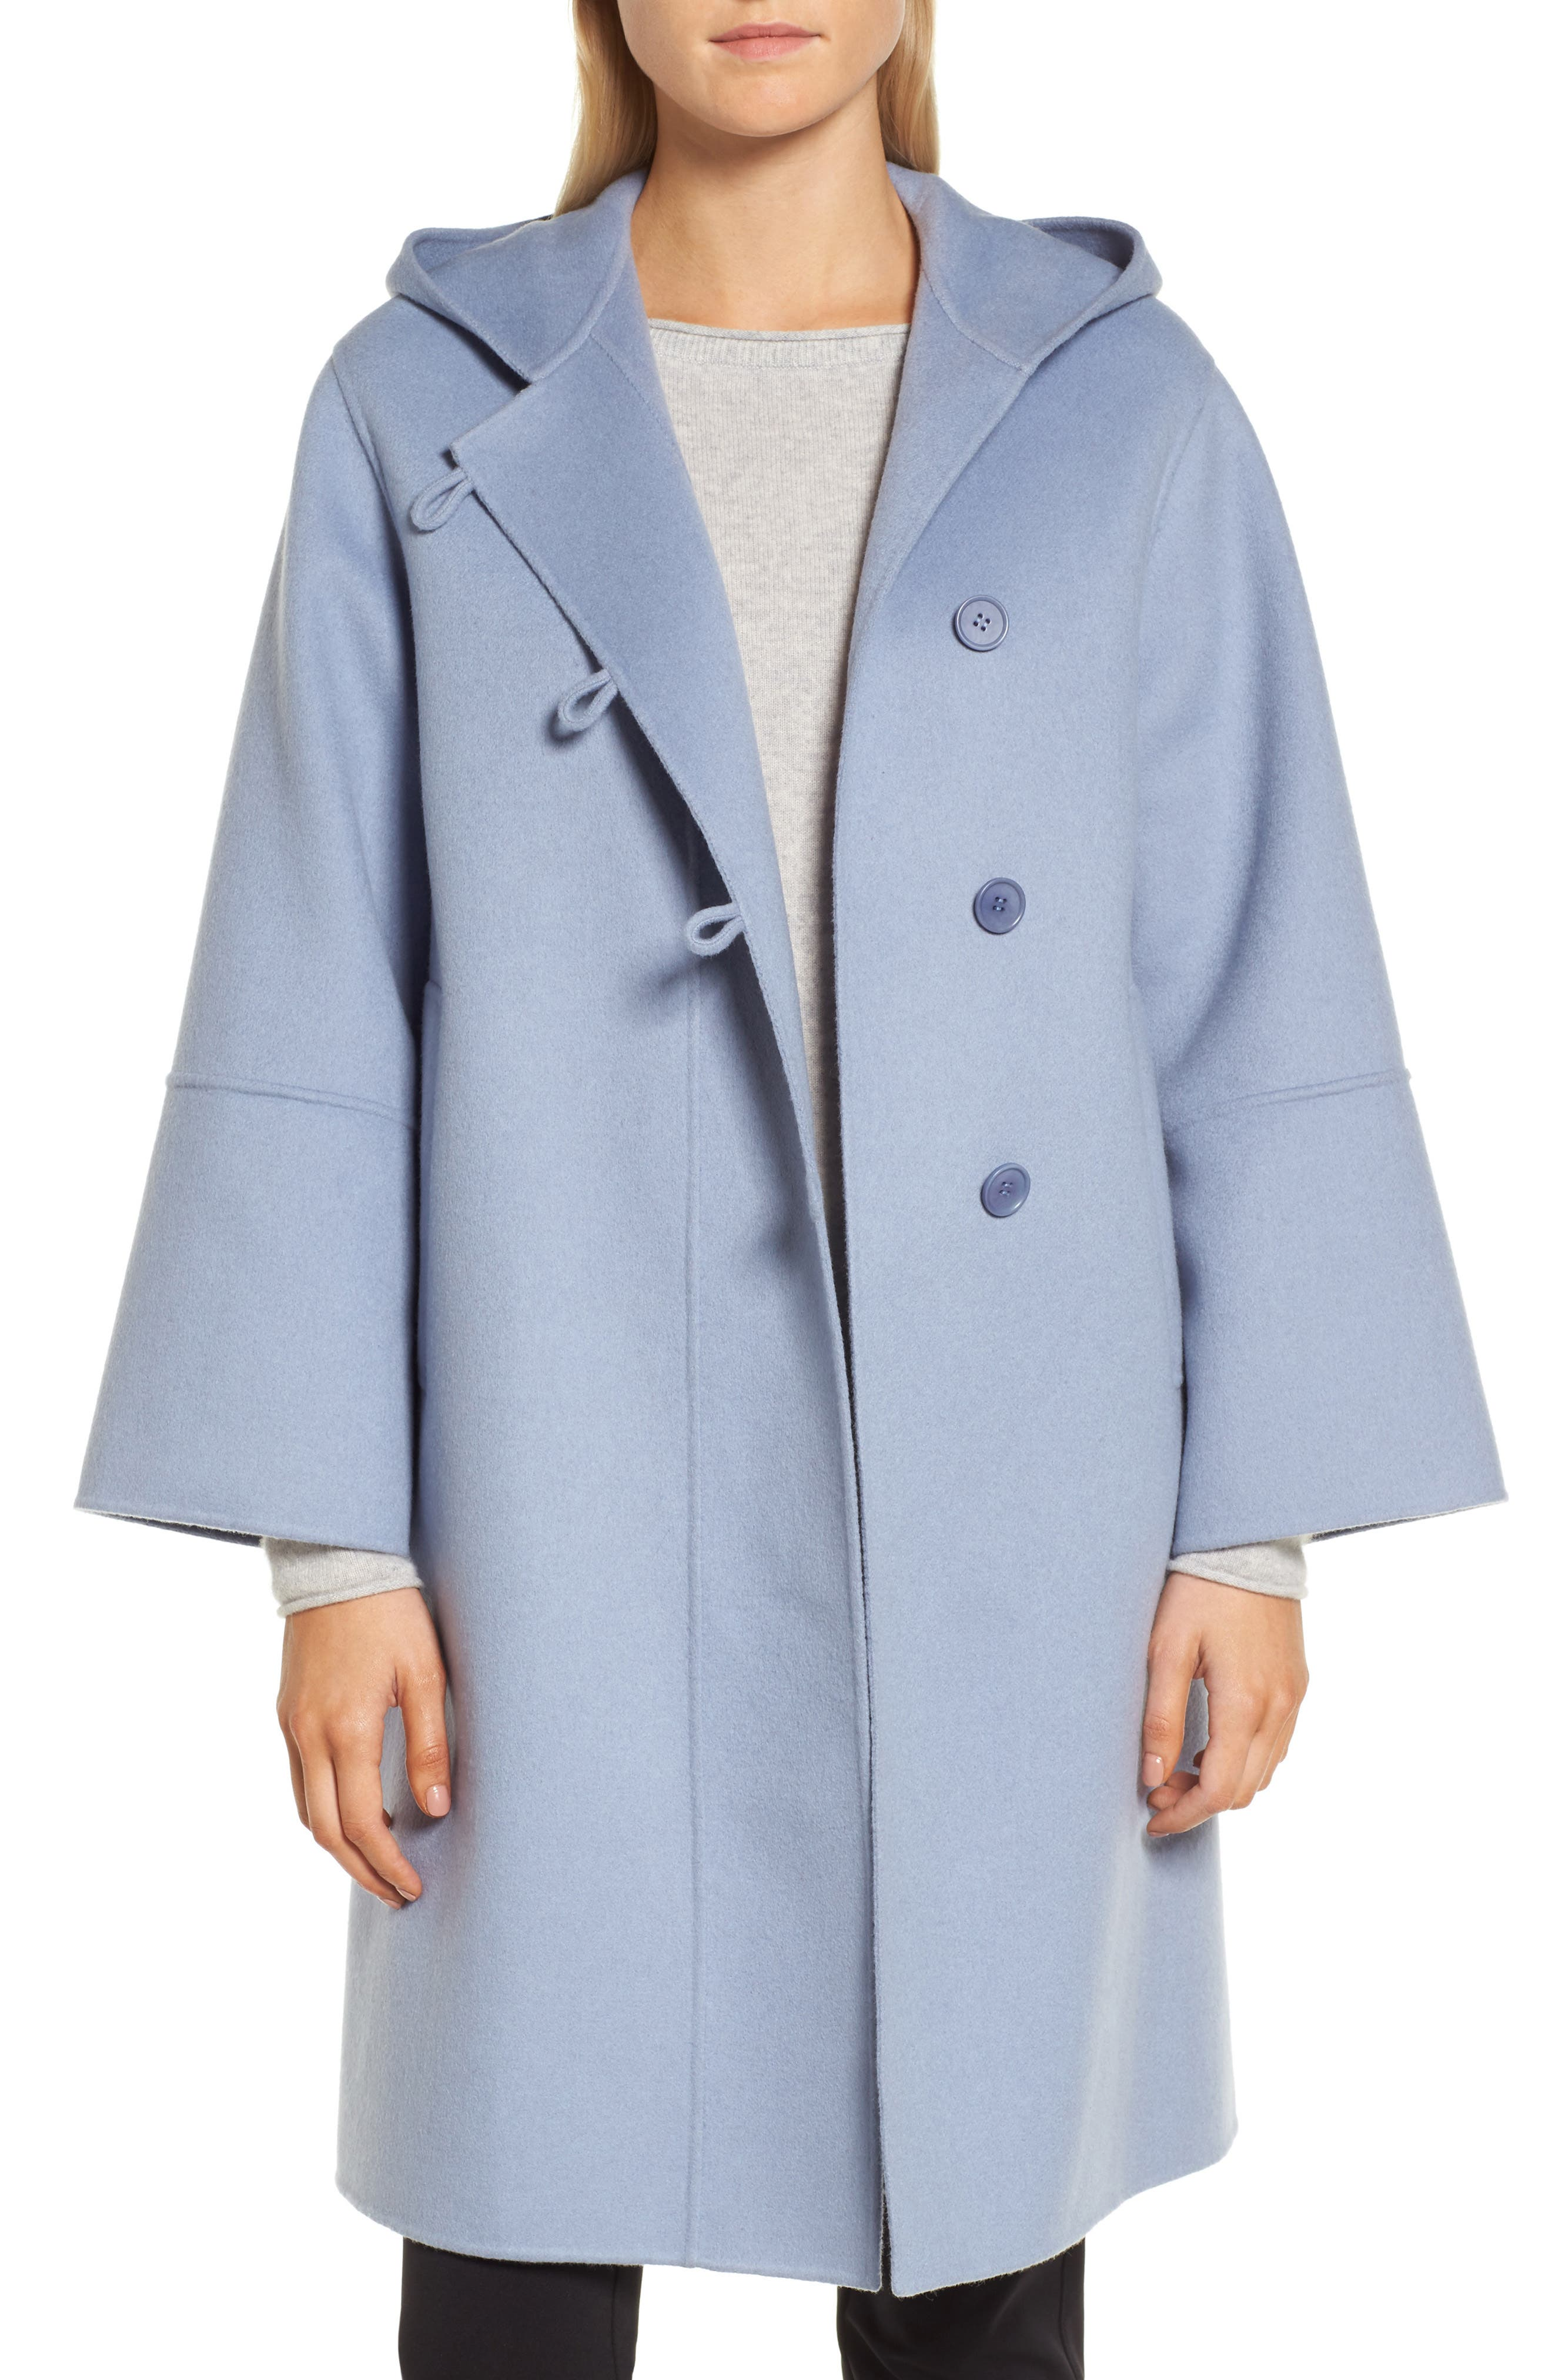 Nordstrom Signature Hooded Wool & Cashmere Coat